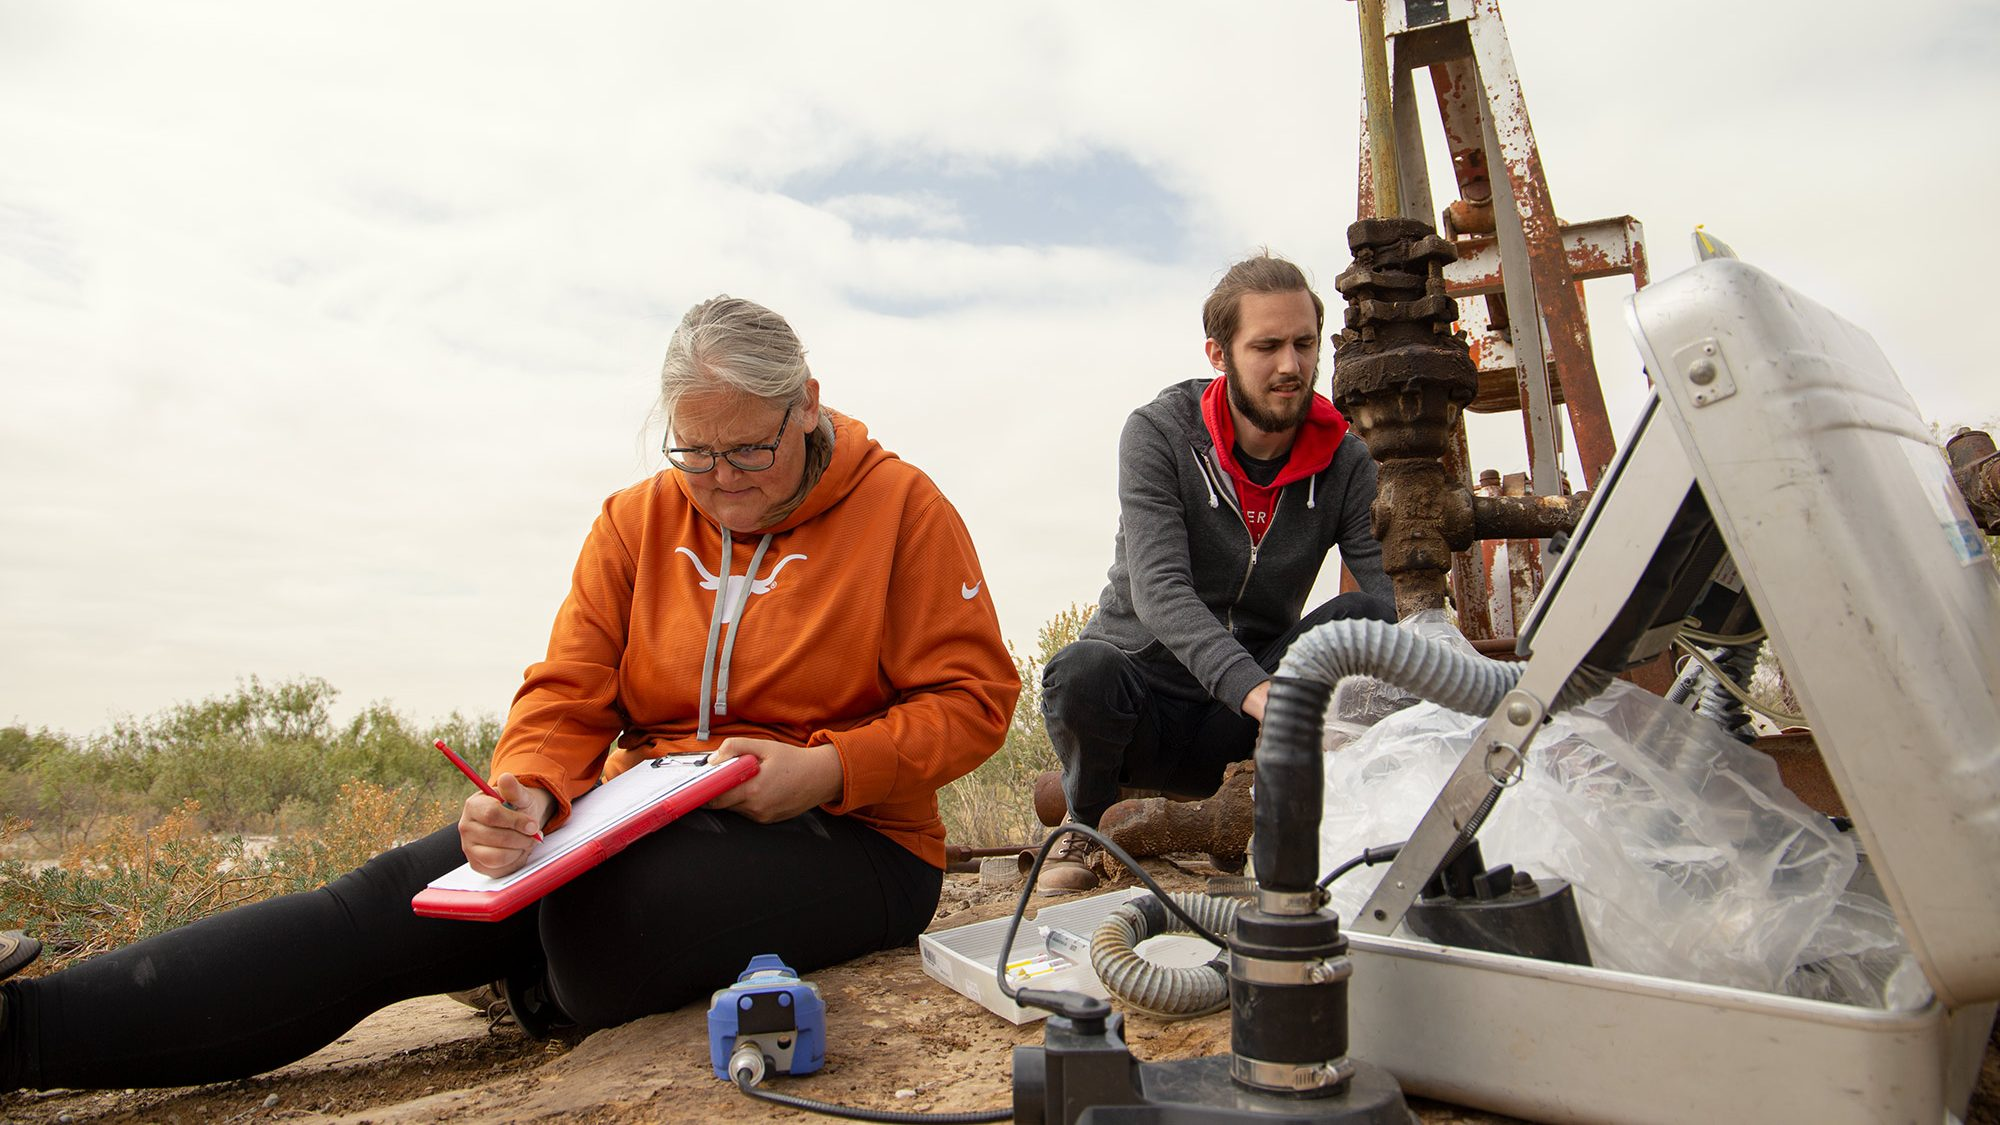 Amy Townsend-Small and assistant measuring methane from well